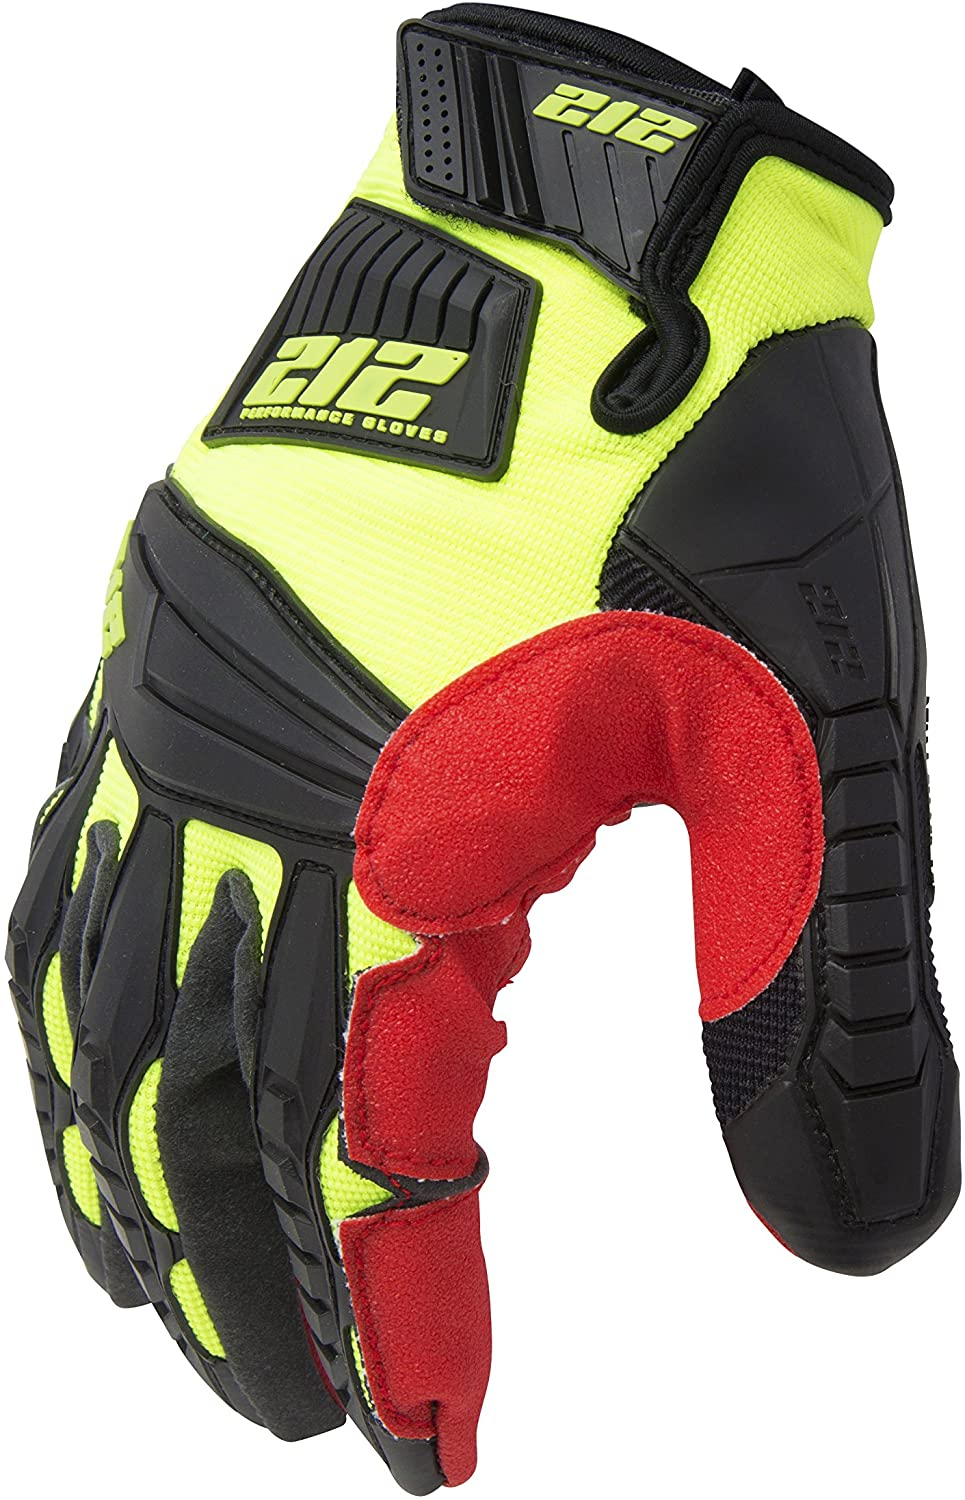 212 Performance Super Hi-Vis Impact and Gloves Ranking integrated 1st place Construction for Attention brand